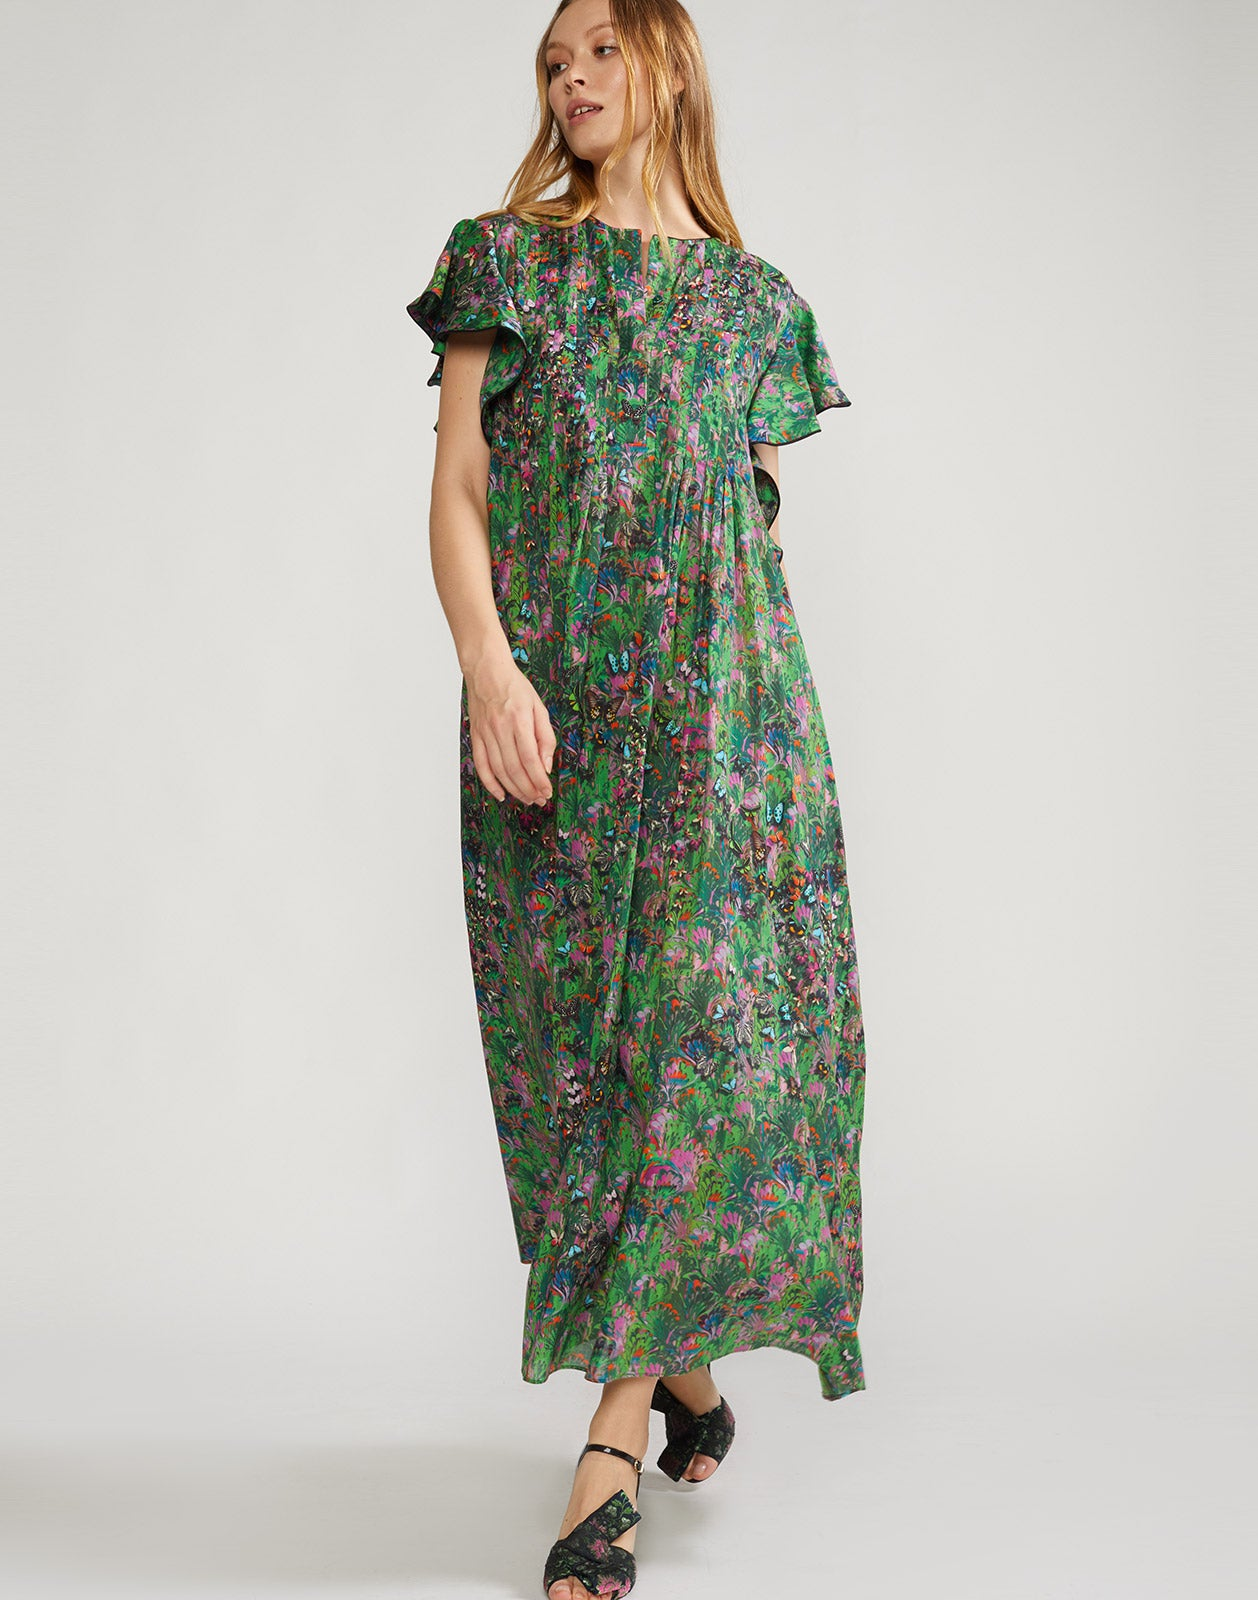 Lightweight maxi dress in green marble print.